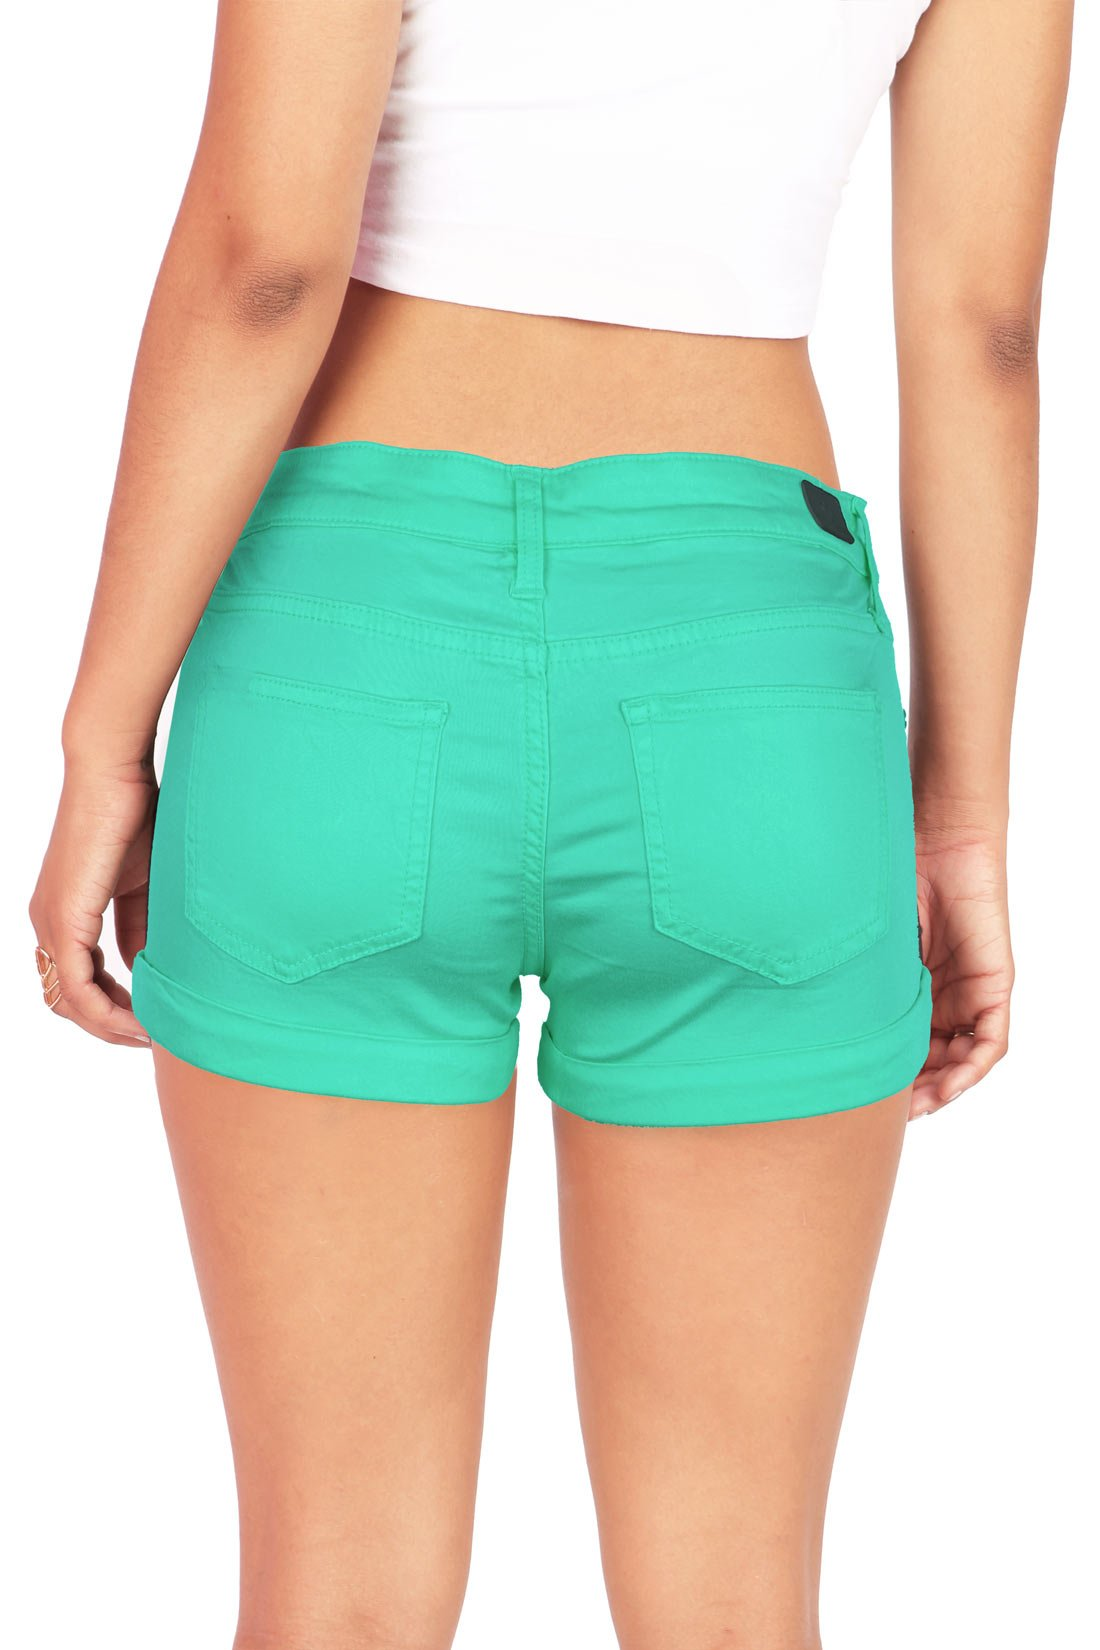 Celebrity Pink Women's Juniors Casual Cuffed Design Shorts (9, Jade) by Celebrity Pink (Image #3)